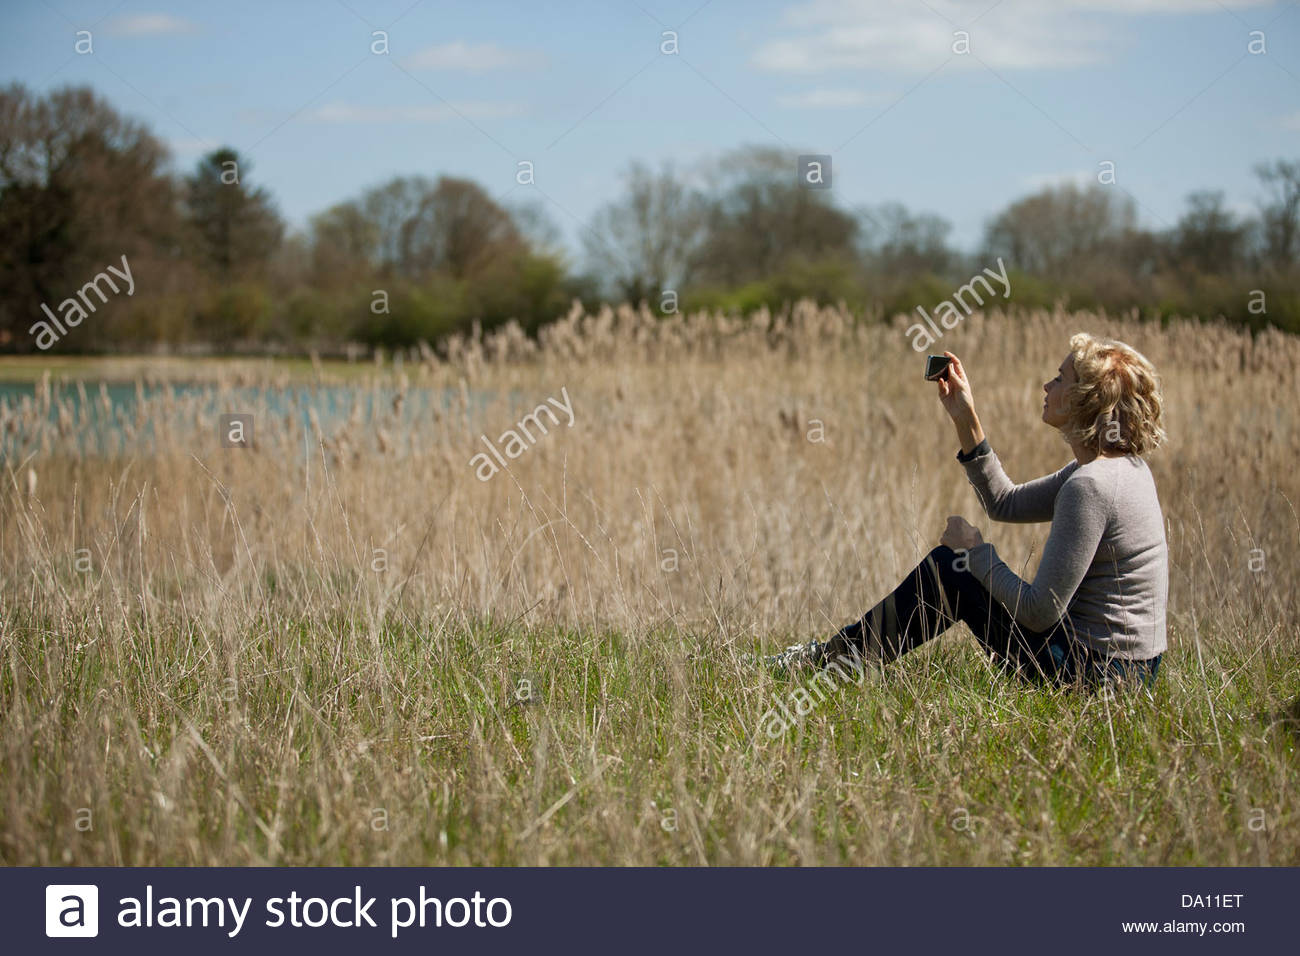 A mature woman sitting in long grass, taking a photo with a smartphone - Stock Image